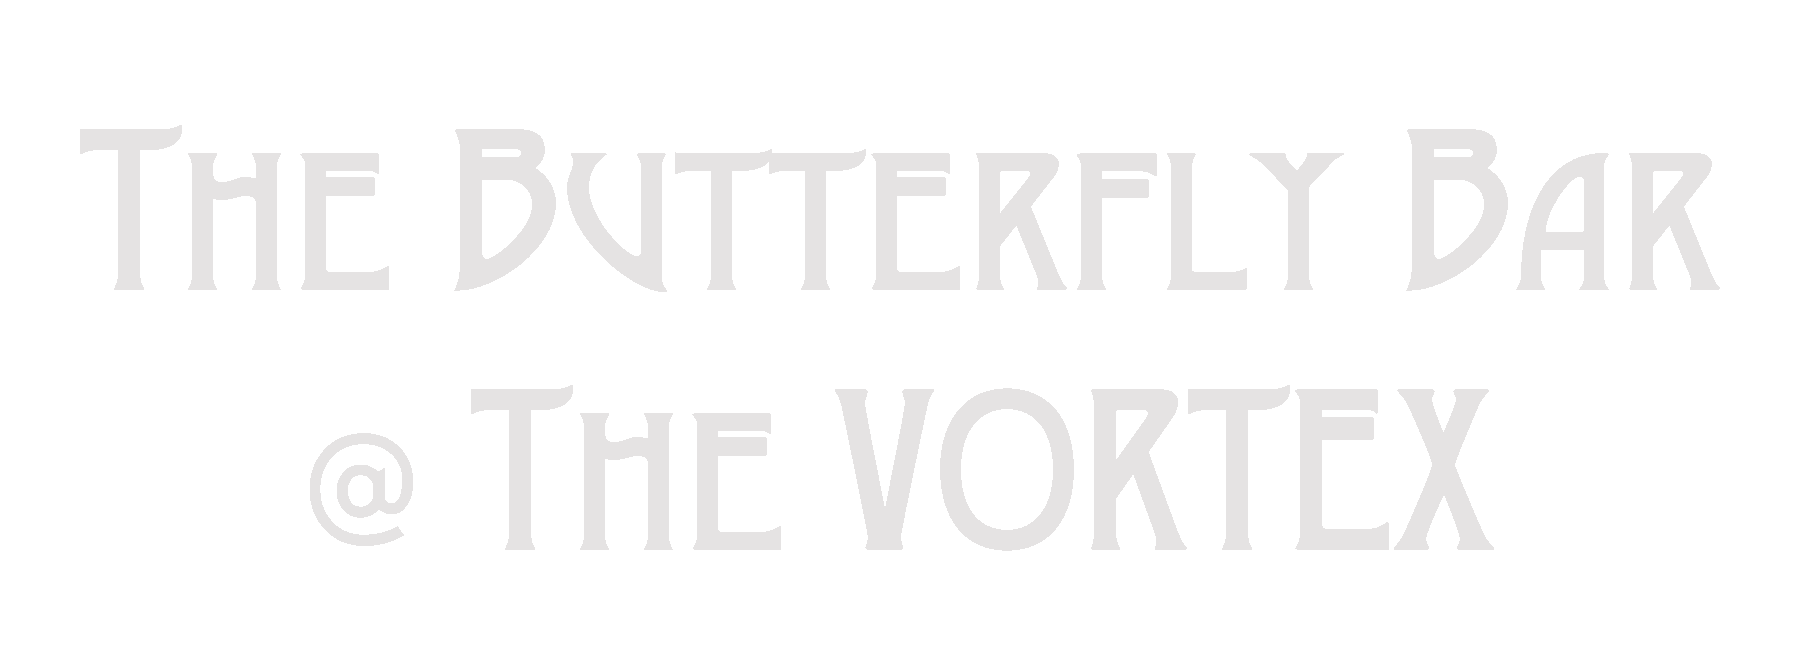 THE BUTTERFLY BAR @ THE VORTEX